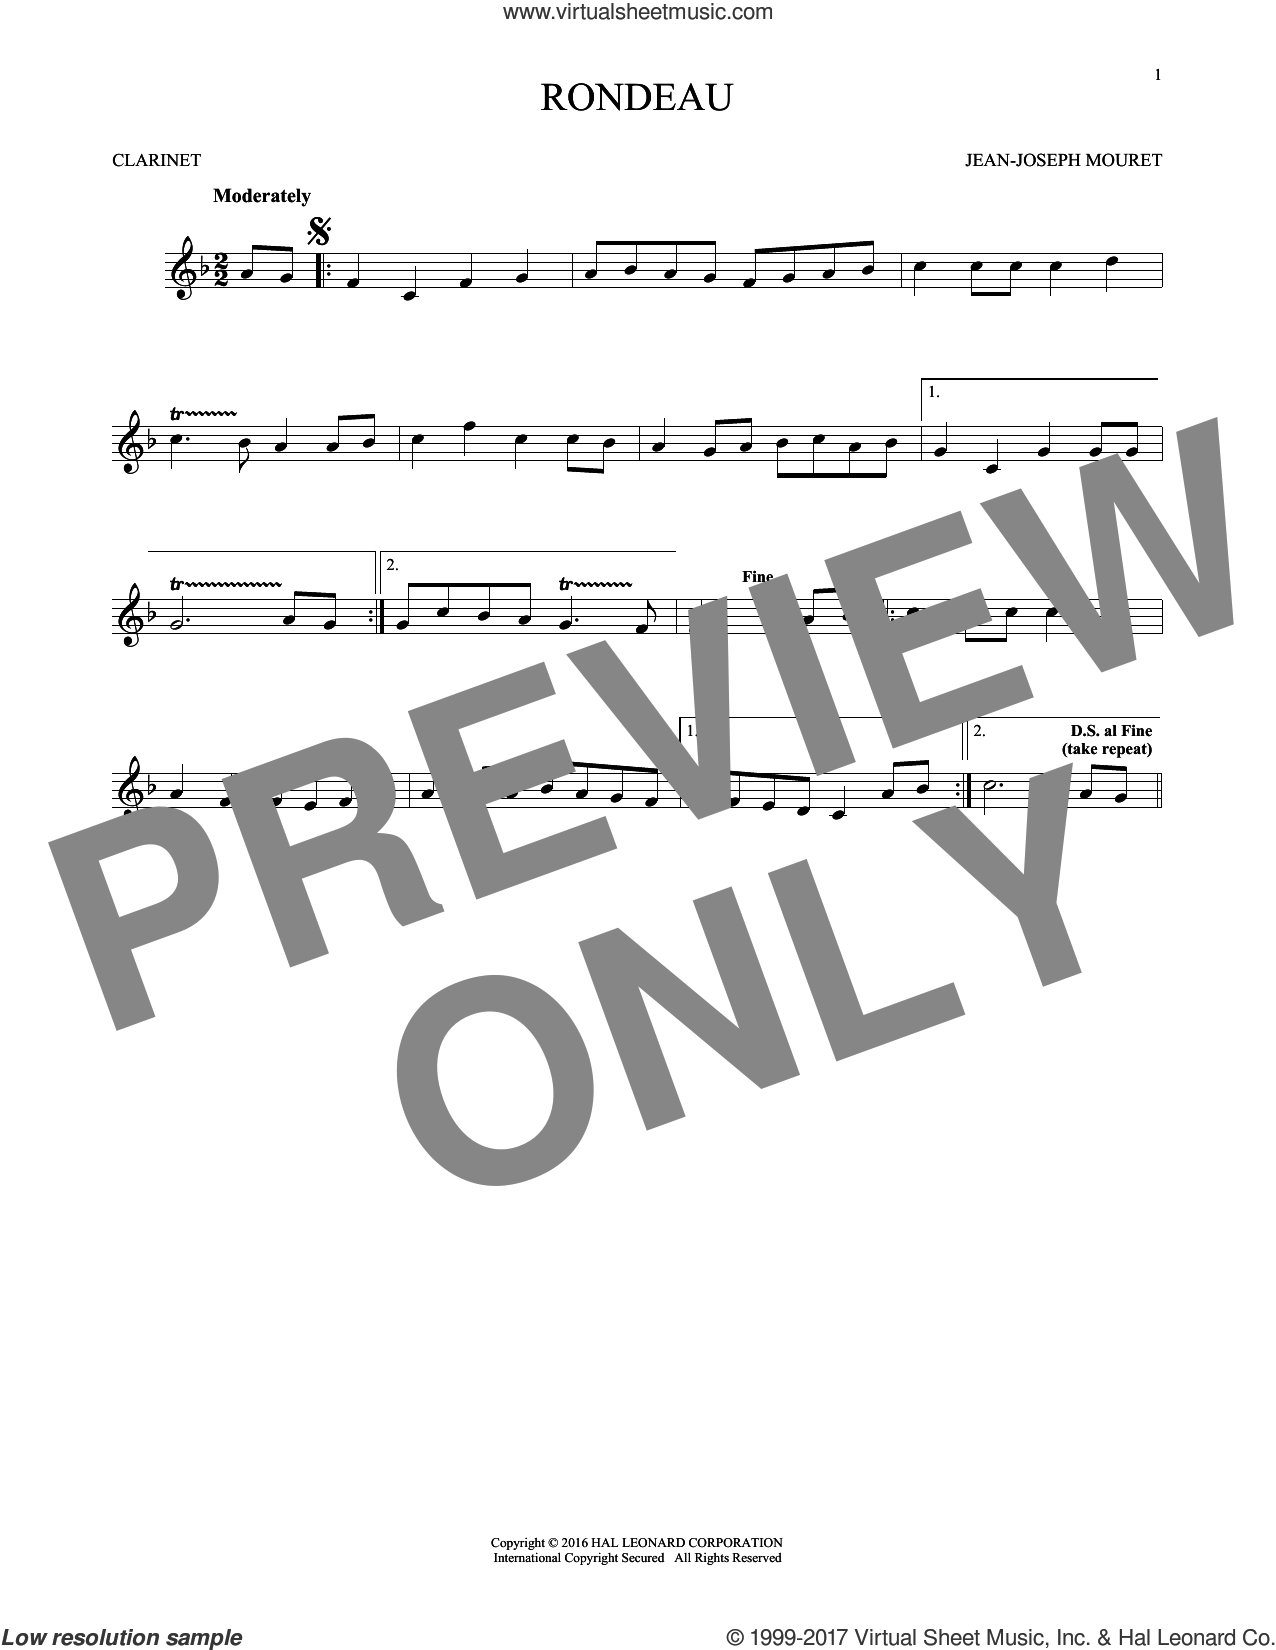 Fanfare Rondeau sheet music for clarinet solo by Jean-Joseph Mouret, classical score, intermediate skill level